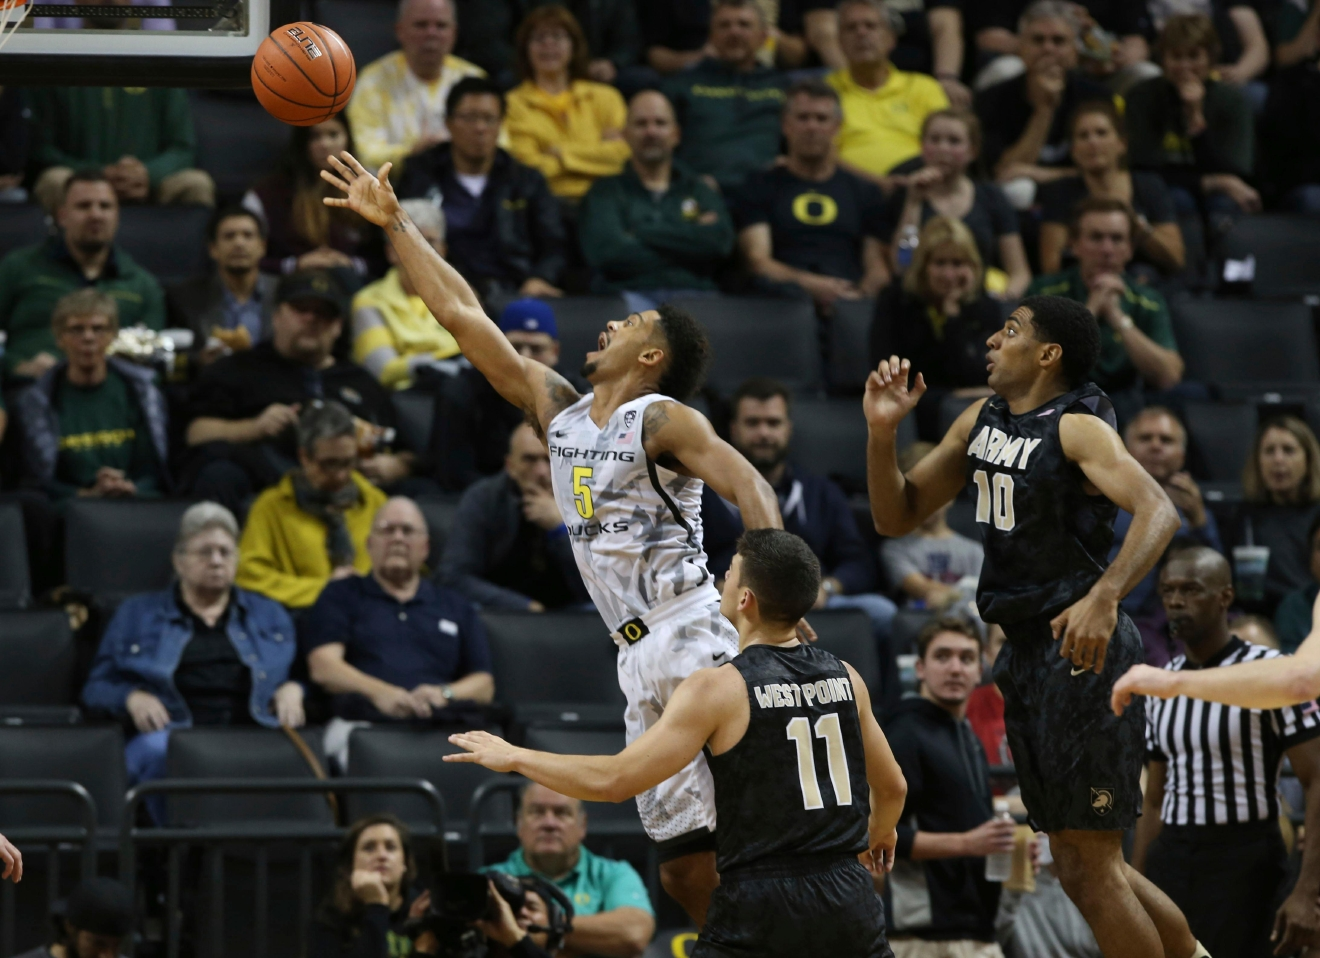 Oregon's Tyler Dorsey, left, releases a shot next to Army's Thomas Funk and Kennedy Edwards during the second half of an NCAA college basketball game Friday, Nov. 11, 2016, in Eugene, Ore. (AP Photo/Chris Pietsch)